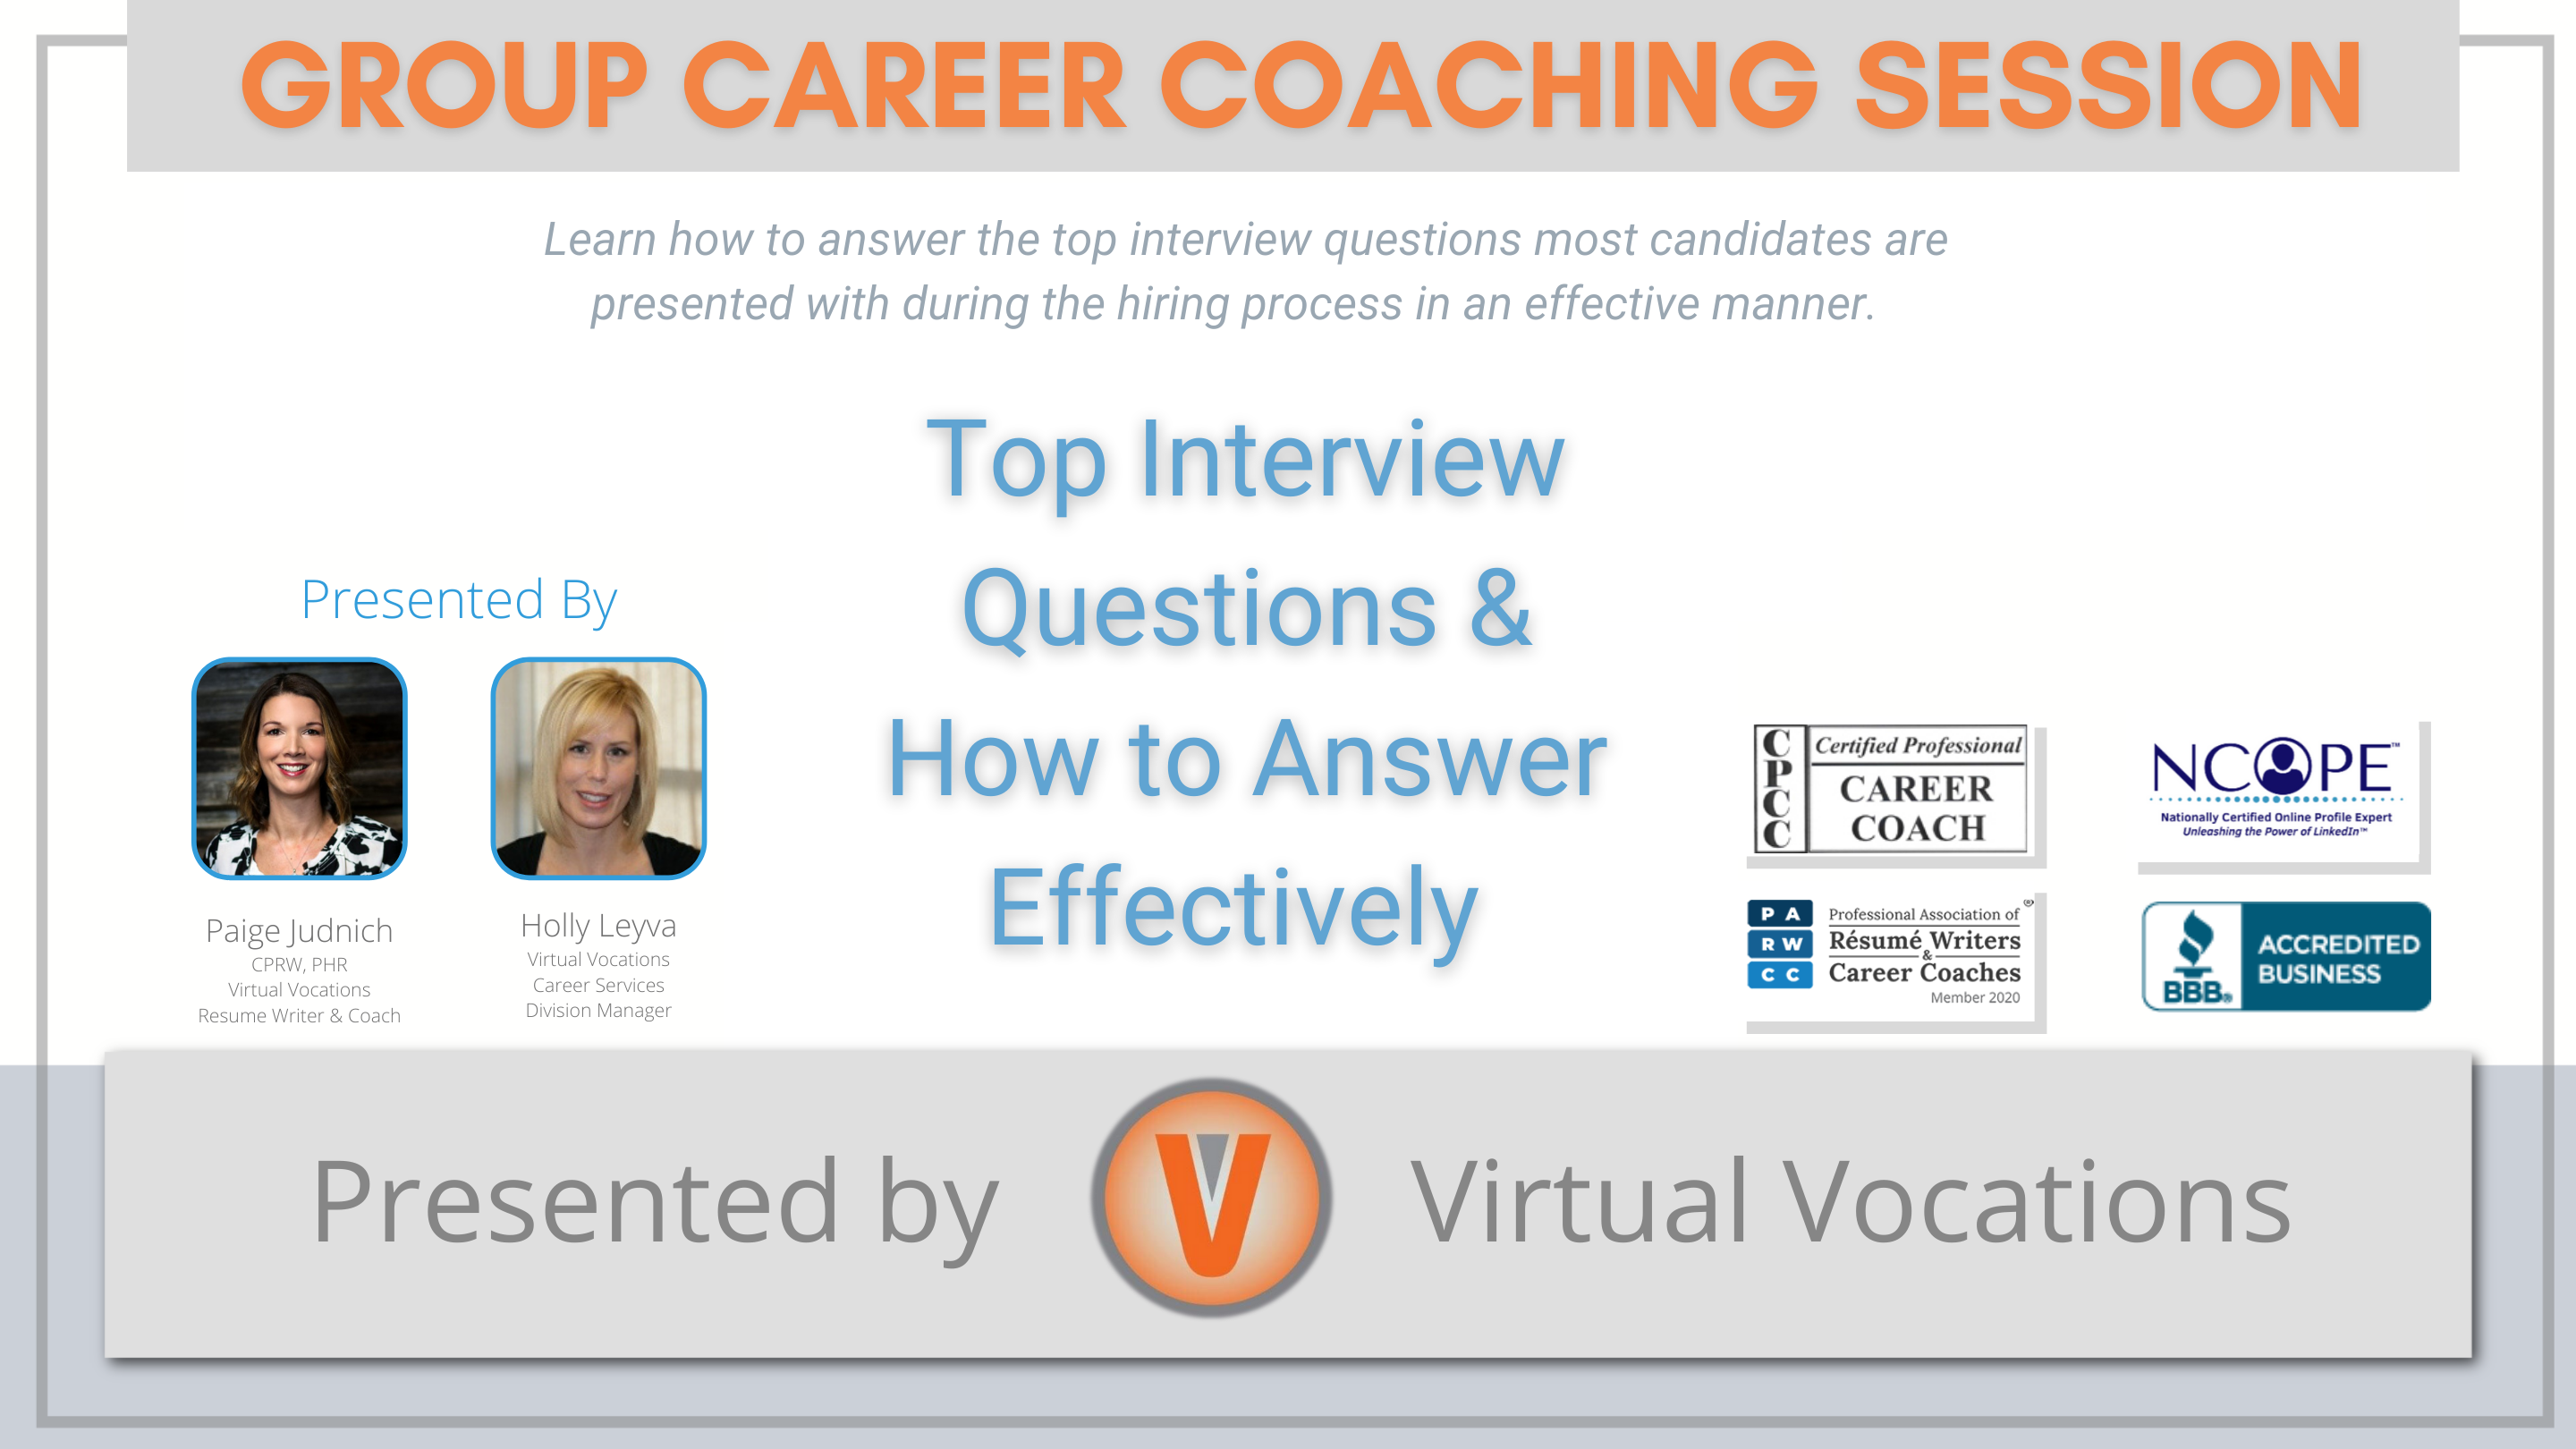 Top Interview Questions & How to Answer Effectively